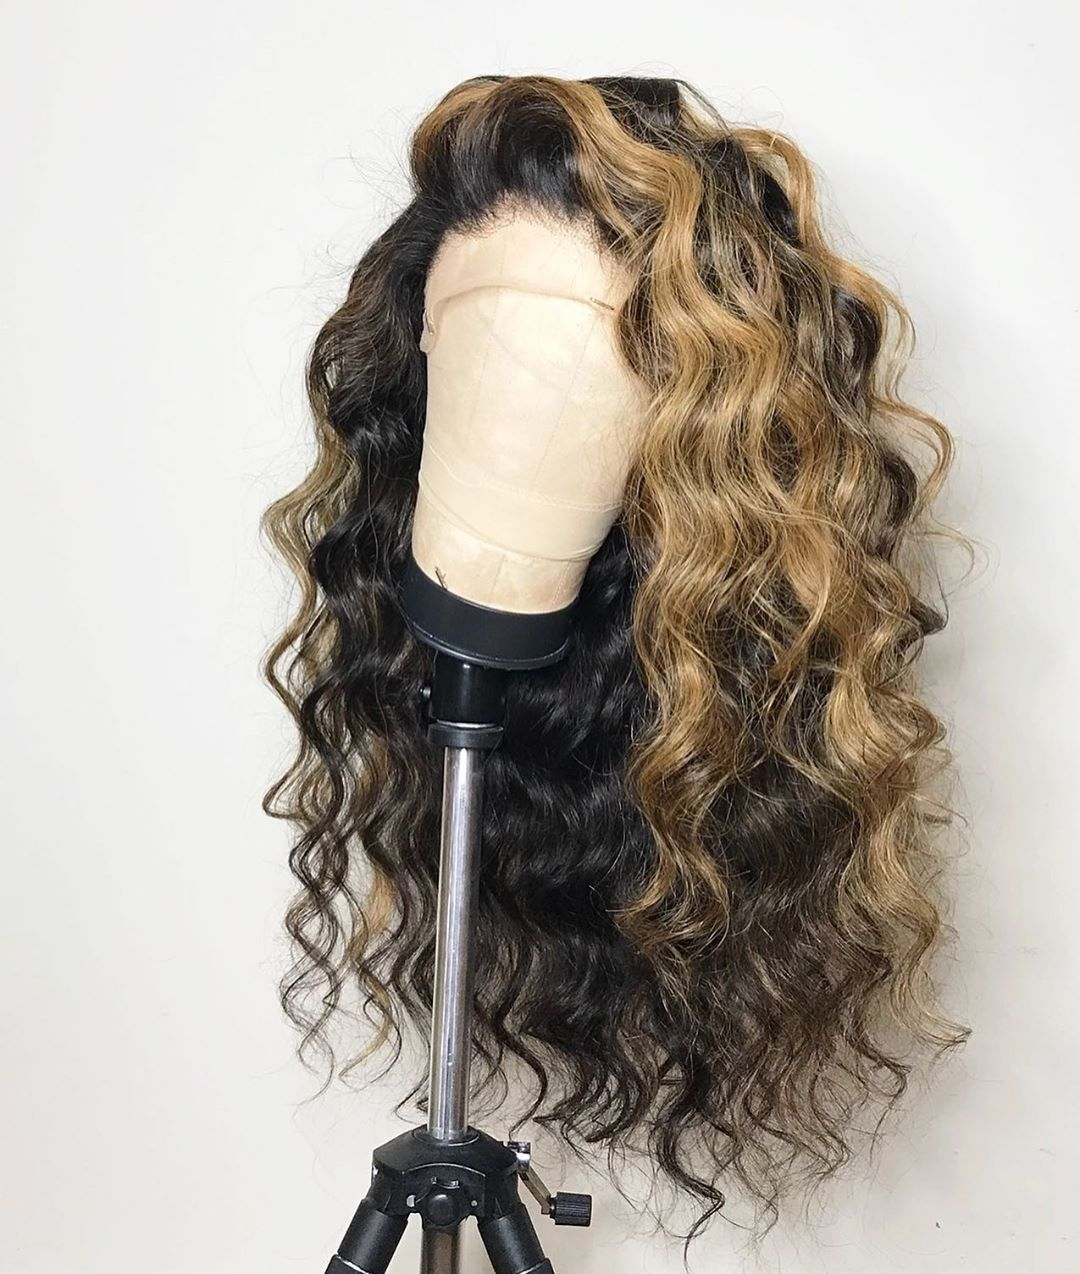 Virgin-Cambodian-Curly-Hair-Ombre-Balayage-Lace-Front-Wig